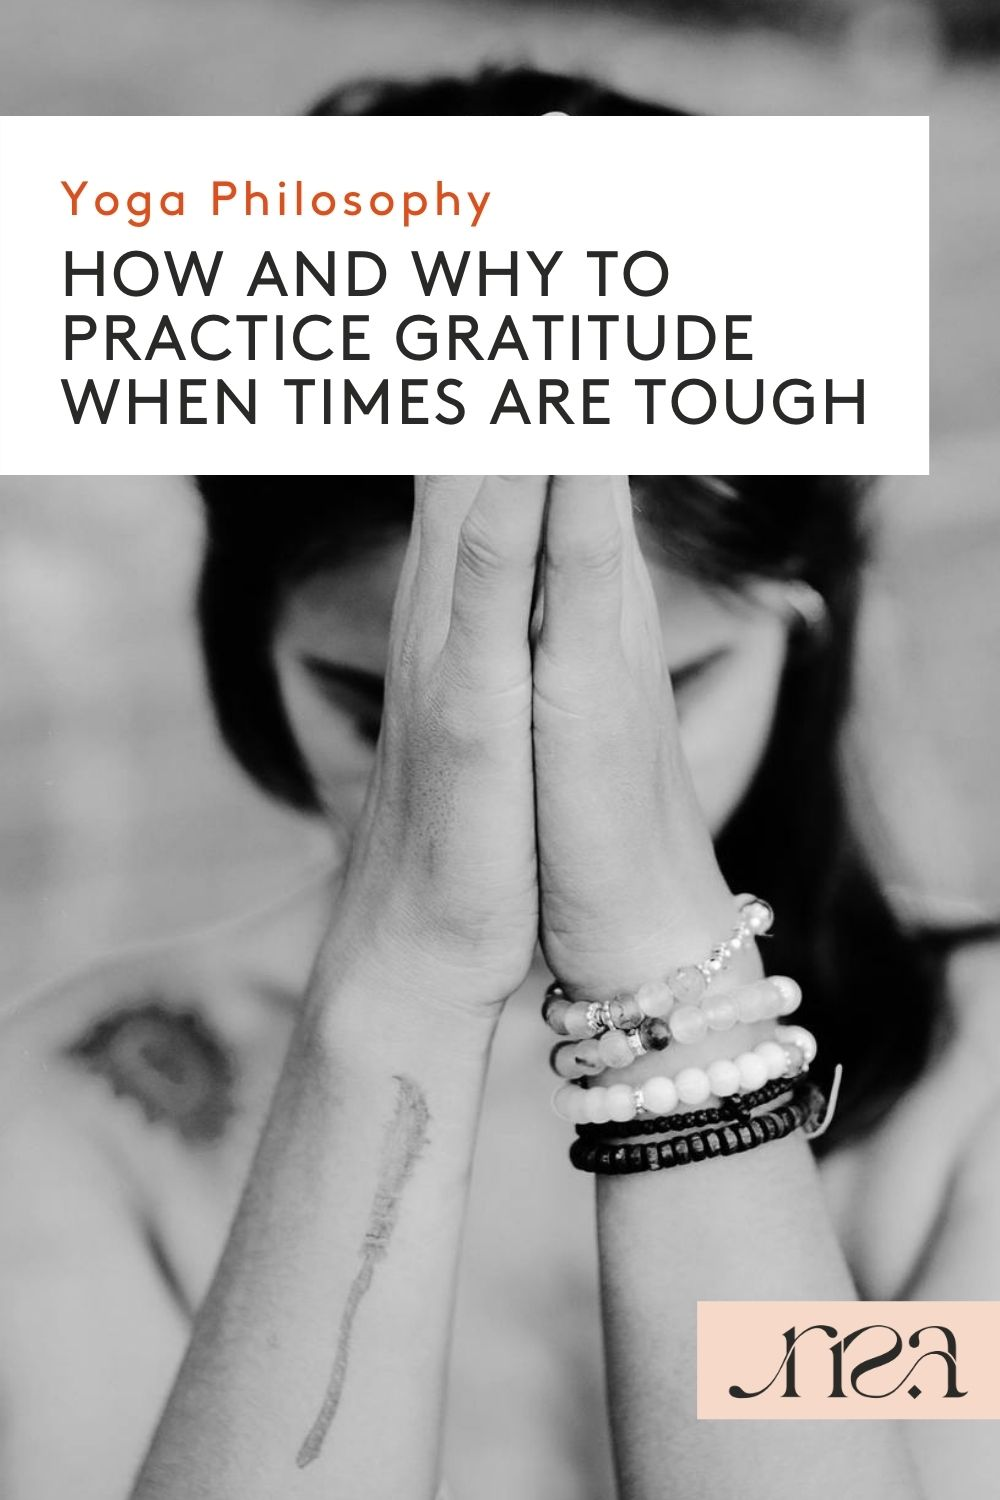 Yoga Philosophy: How and Why to Practice Gratitude When Times are Tough